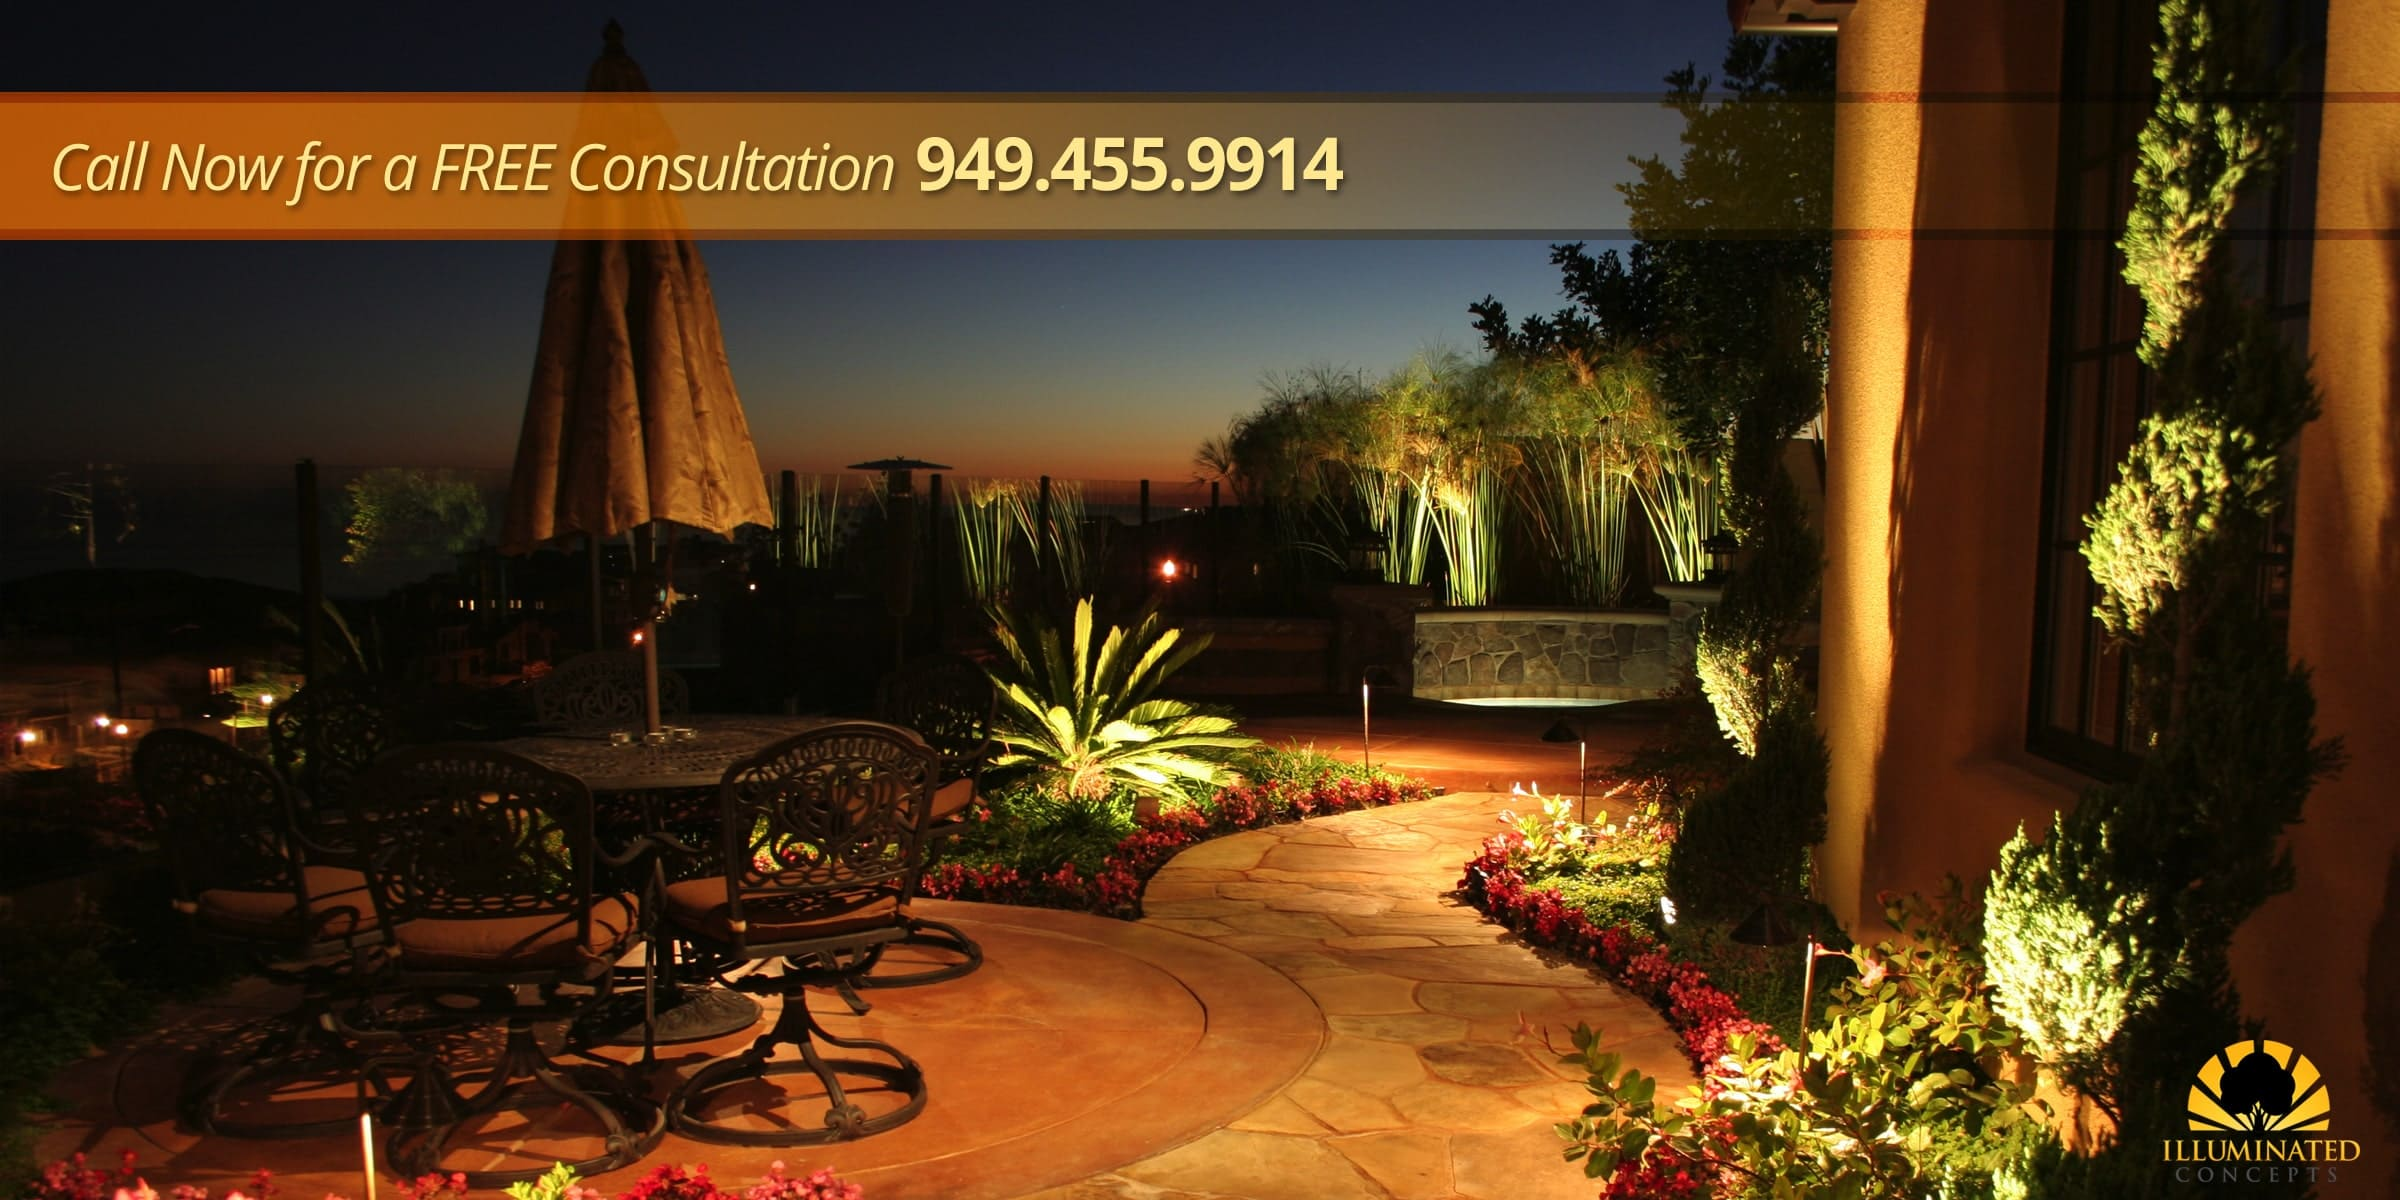 ranch house dining room, railroad station outdoor lighting, police station outdoor lighting, apartment complex outdoor lighting, ranch house fireplaces, church outdoor lighting, farm outdoor lighting, ranch house ceiling, cowboy outdoor lighting, ranch house fencing, ranch house walkways, ranch house floor, ranch house plumbing, ranch house weddings, home outdoor lighting, ranch house light fixtures, log cabin outdoor lighting, cottage outdoor lighting, ranch house furniture, ranch house doors, on ranch house outdoor lighting ideas